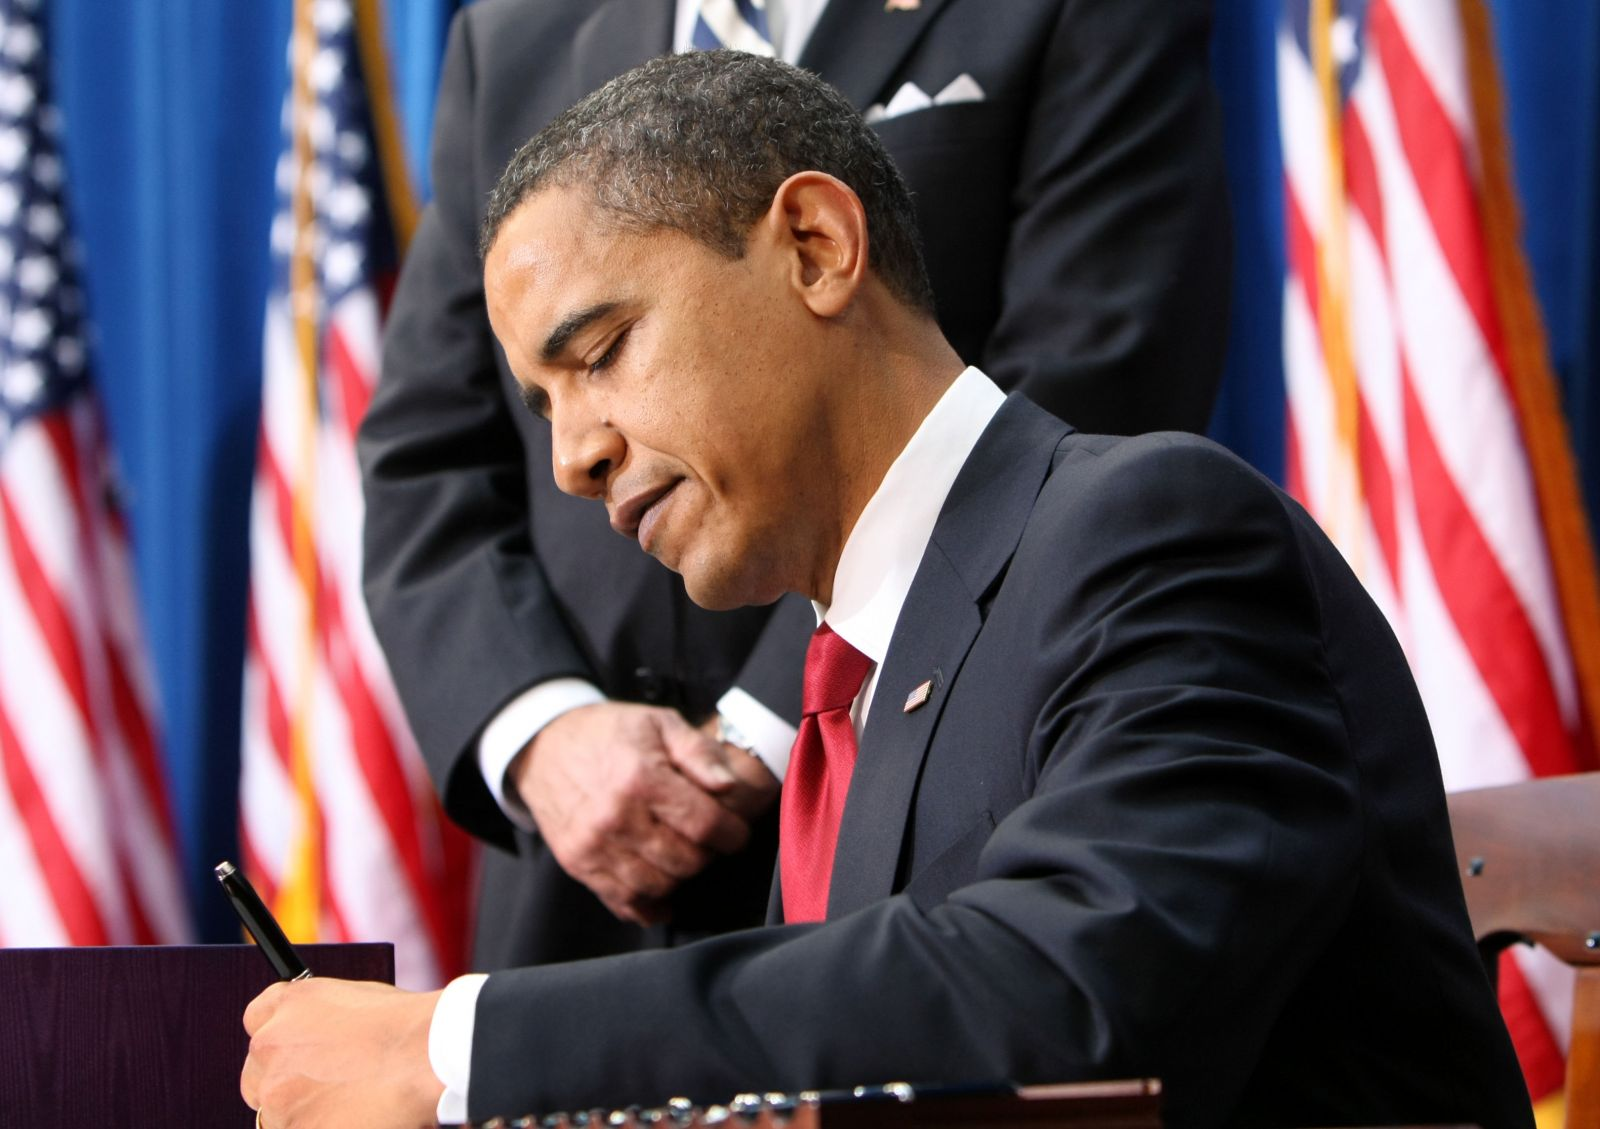 Obama signs executive order to reduce federal GHG emissions